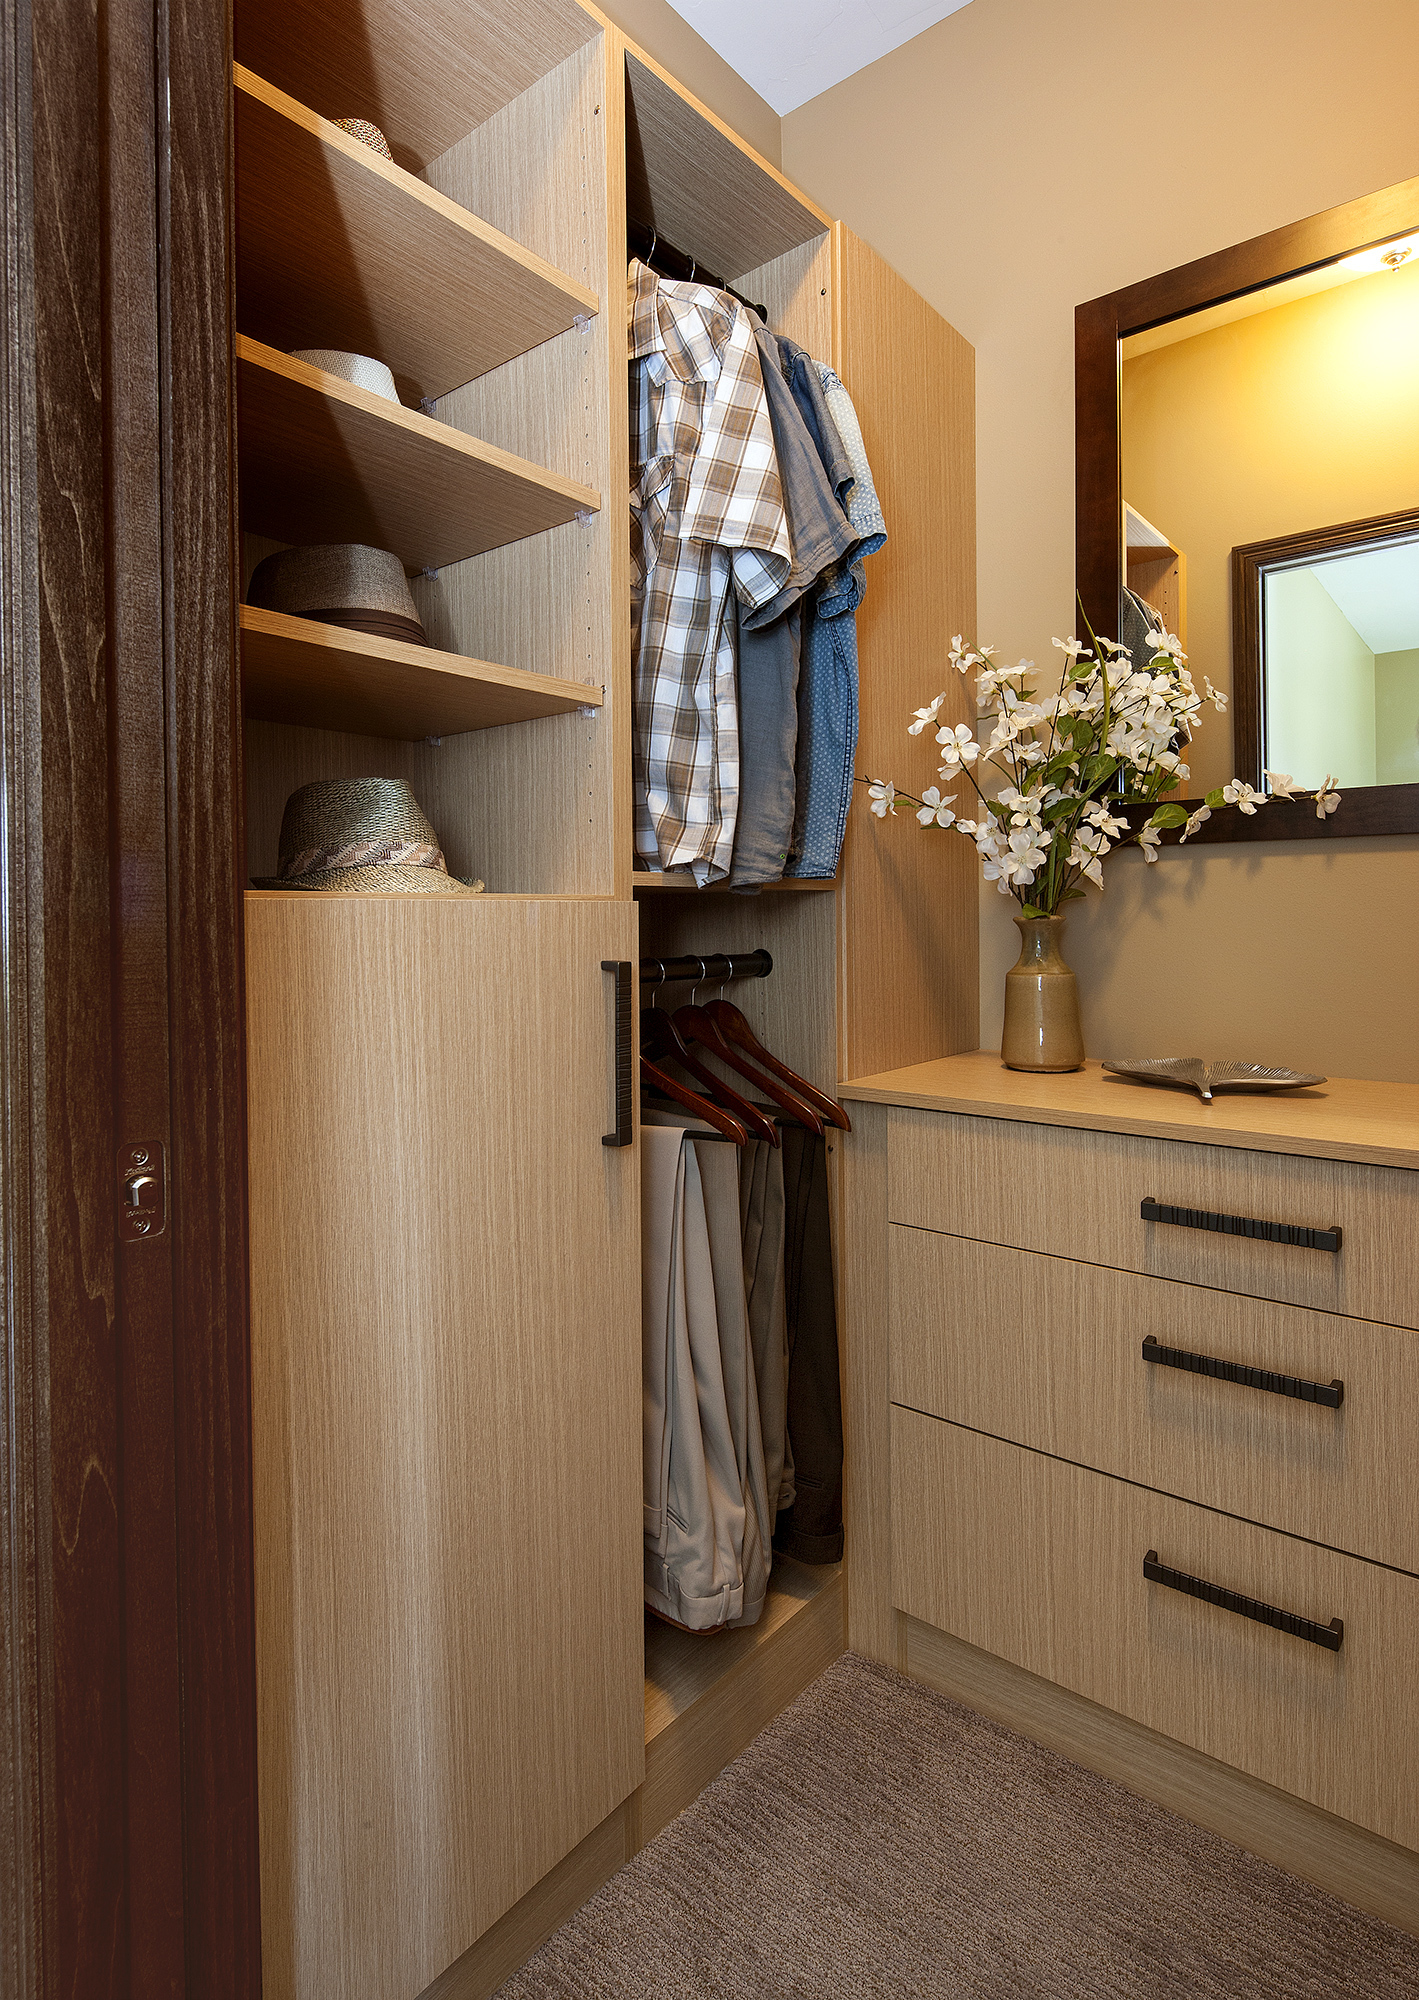 Textured Closet Cabinets in Rift White Oak by ShowplaceEVO - view 1